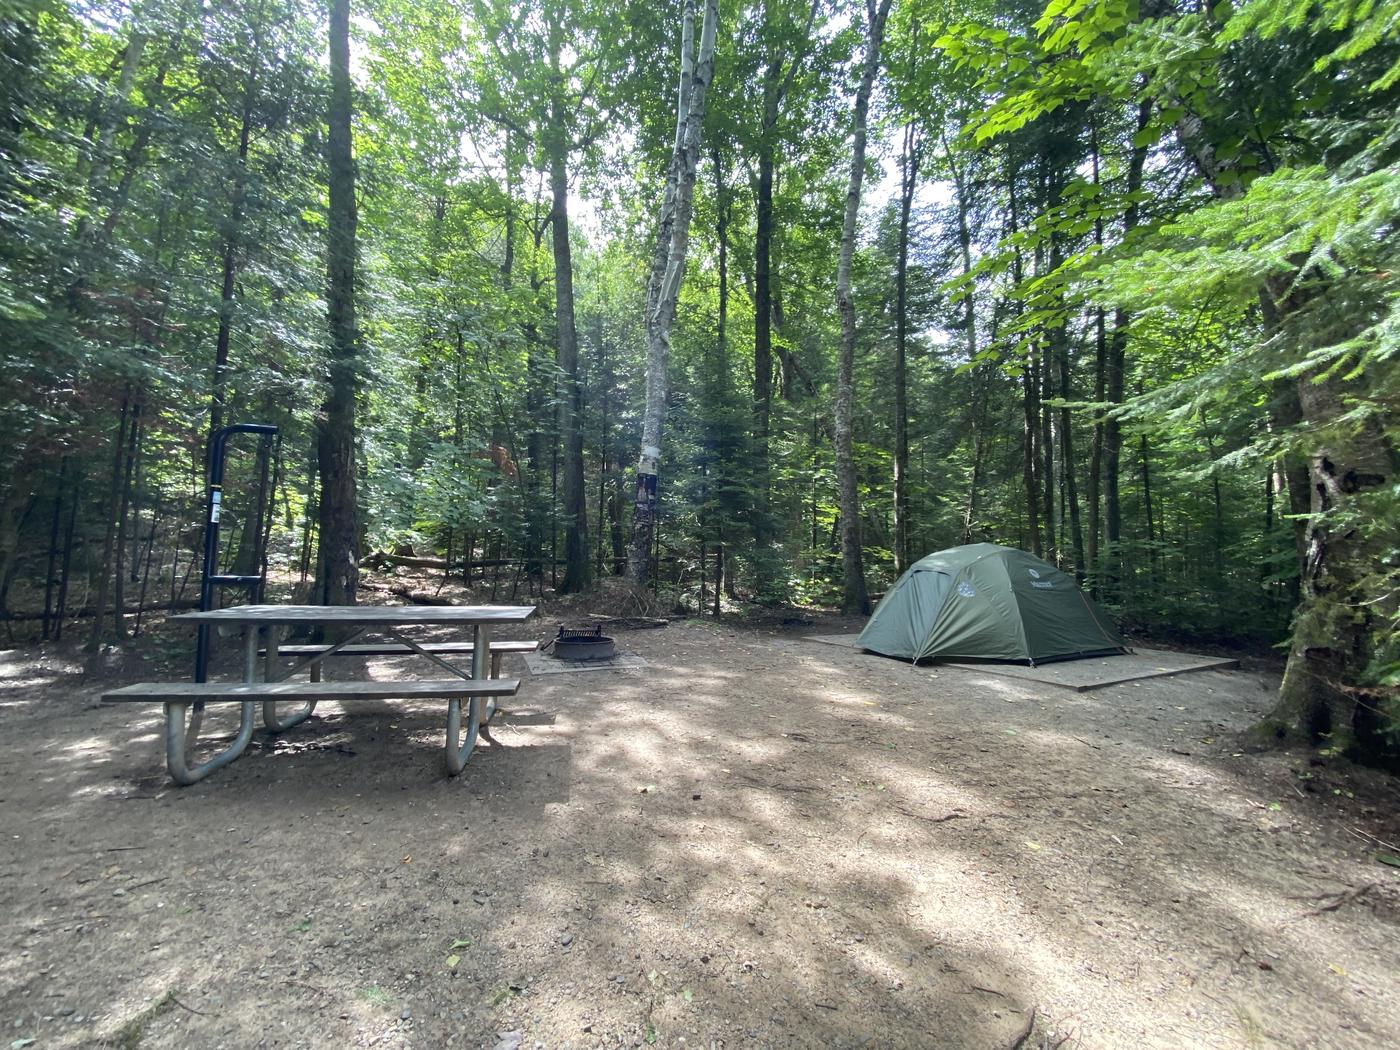 Tent pad, picnic table, fire ring and tent pole